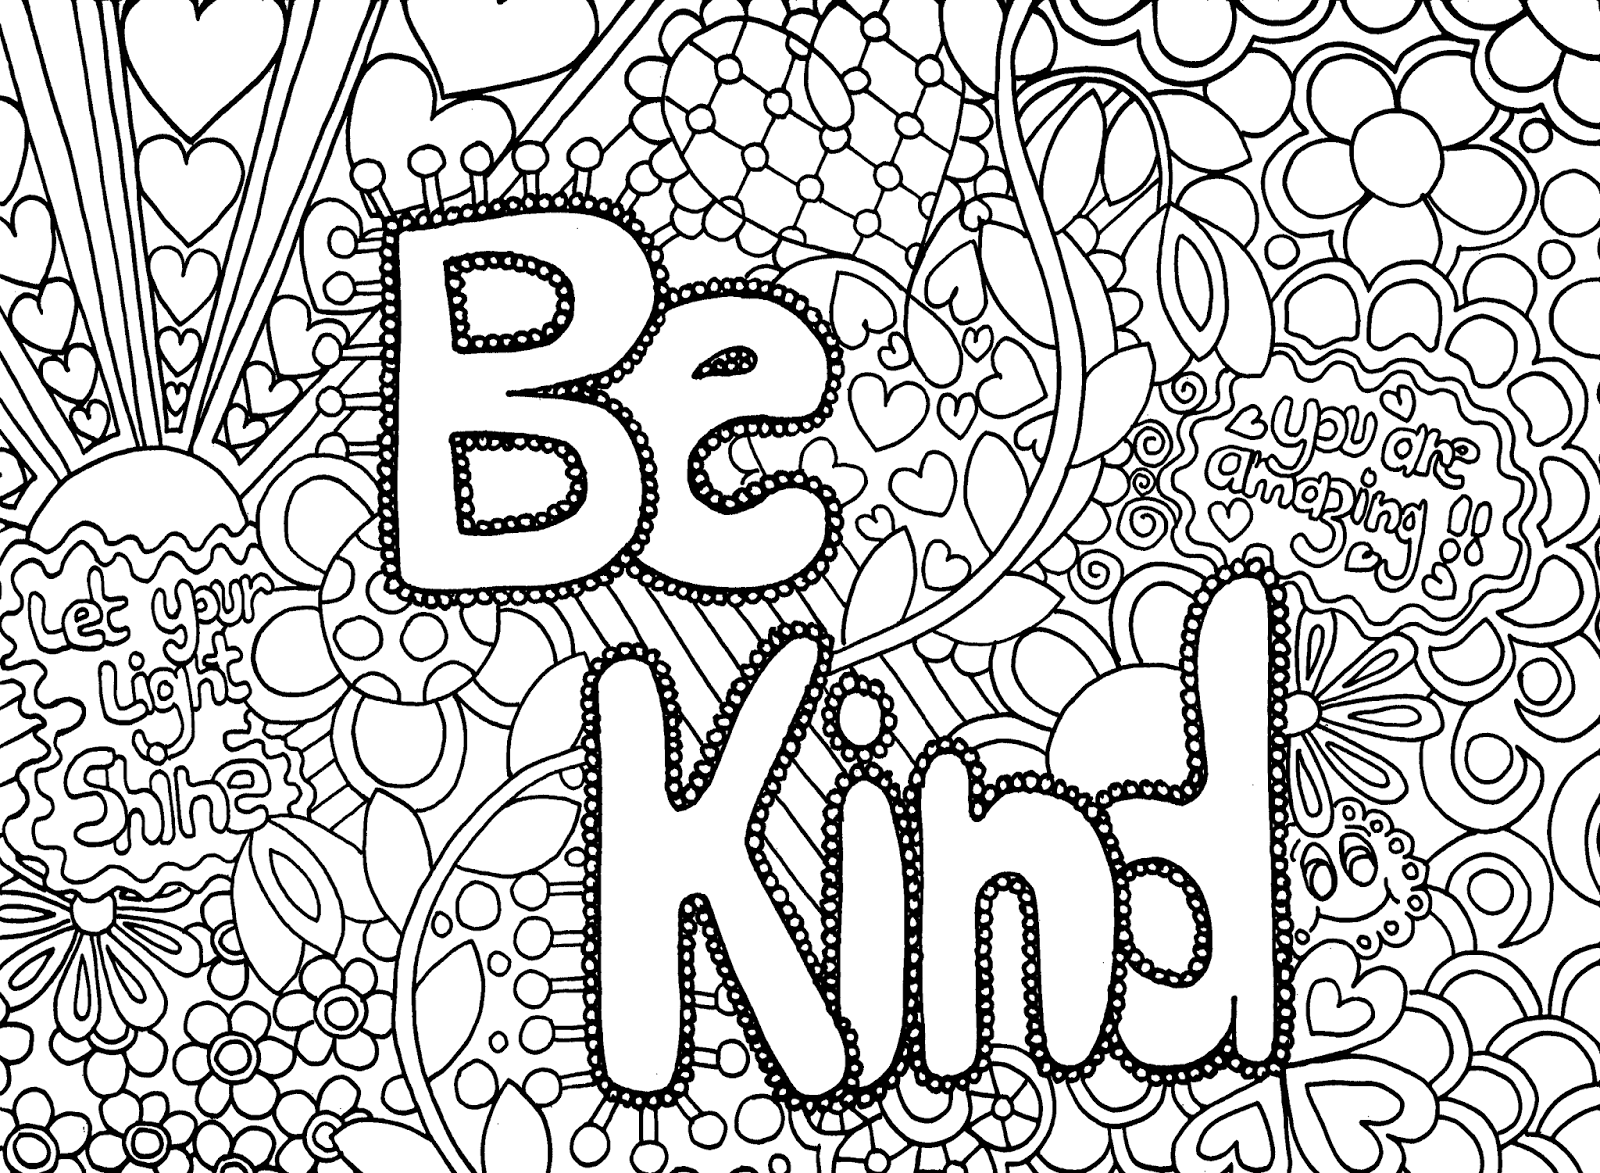 art pictures to color best free printable coloring pages for kids and teens art to pictures color